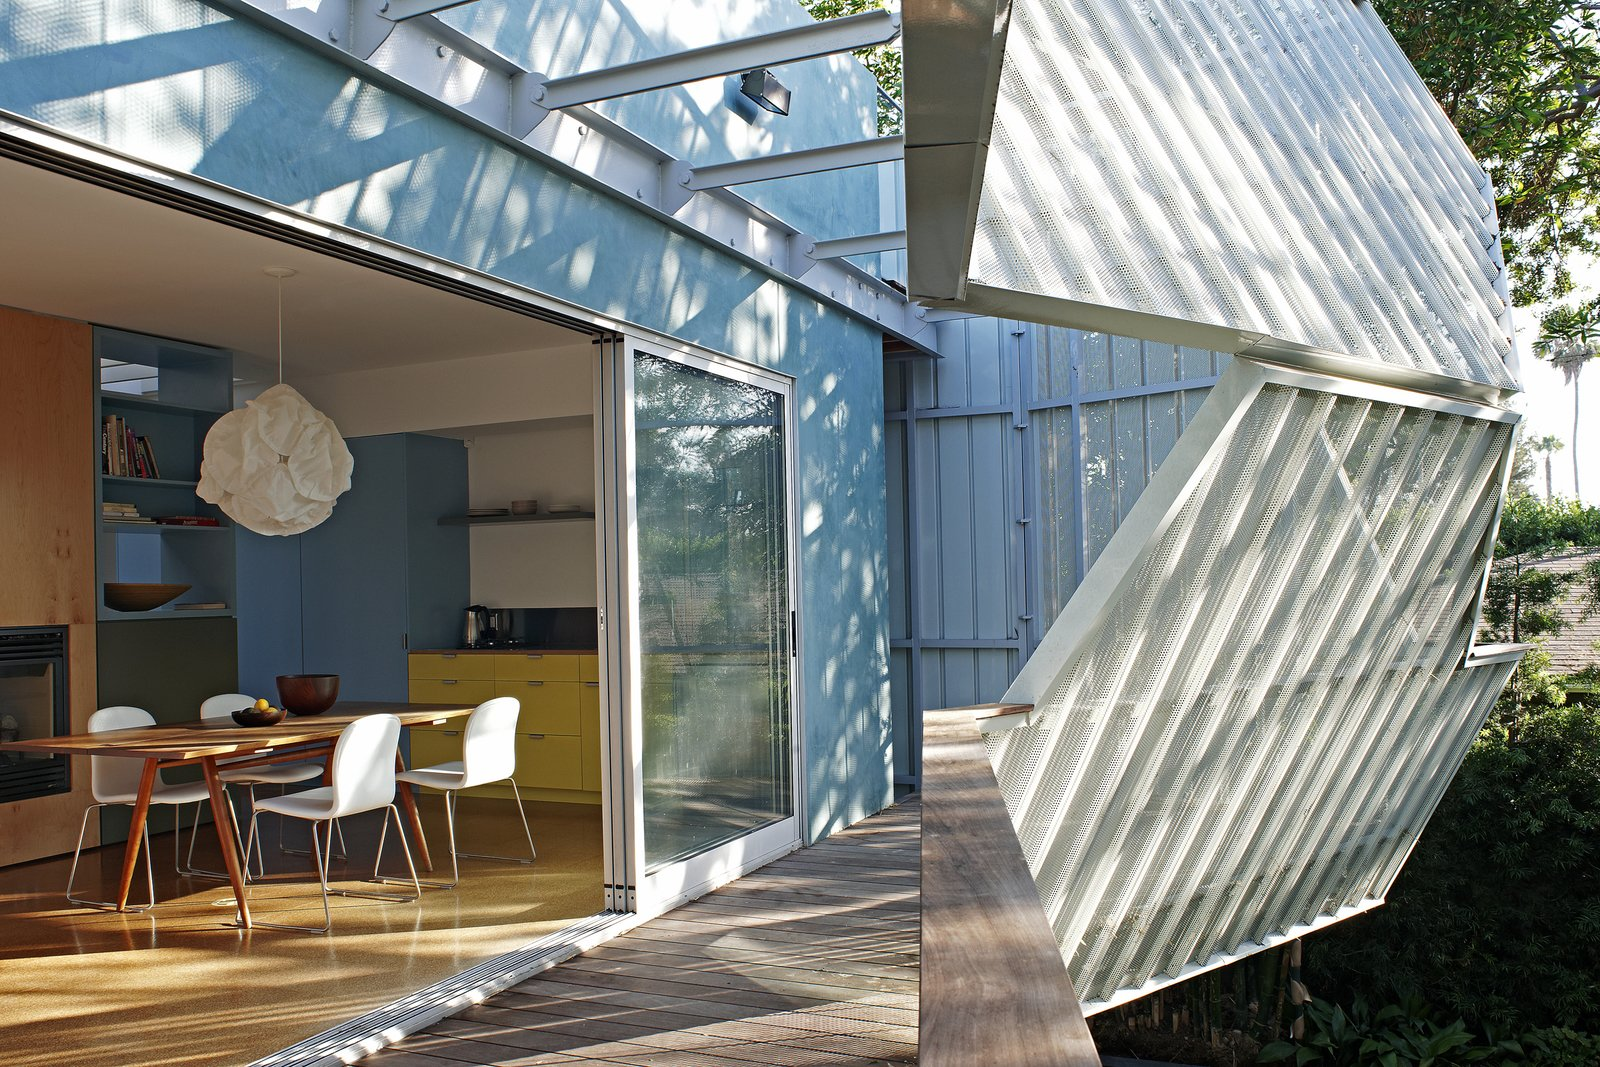 Outdoor, Small Patio, Porch, Deck, and Wood Patio, Porch, Deck  Photo 5 of 10 in A Perforated Screen Brings Privacy and Natural Light to This Bold Venice Home